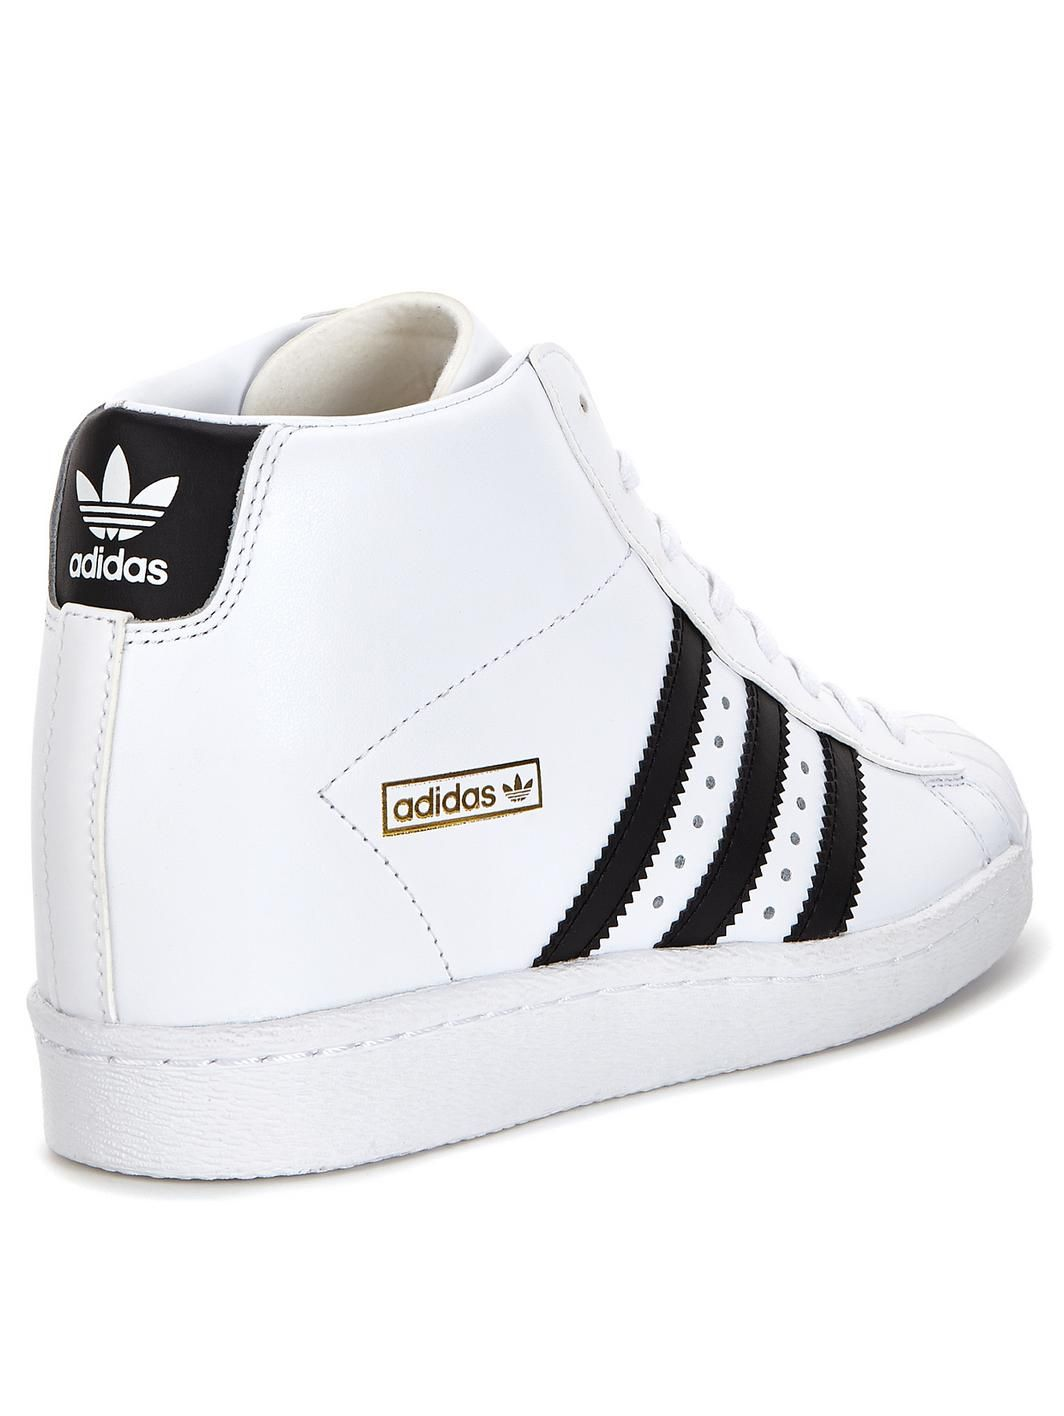 adidas superstar up trainners woman